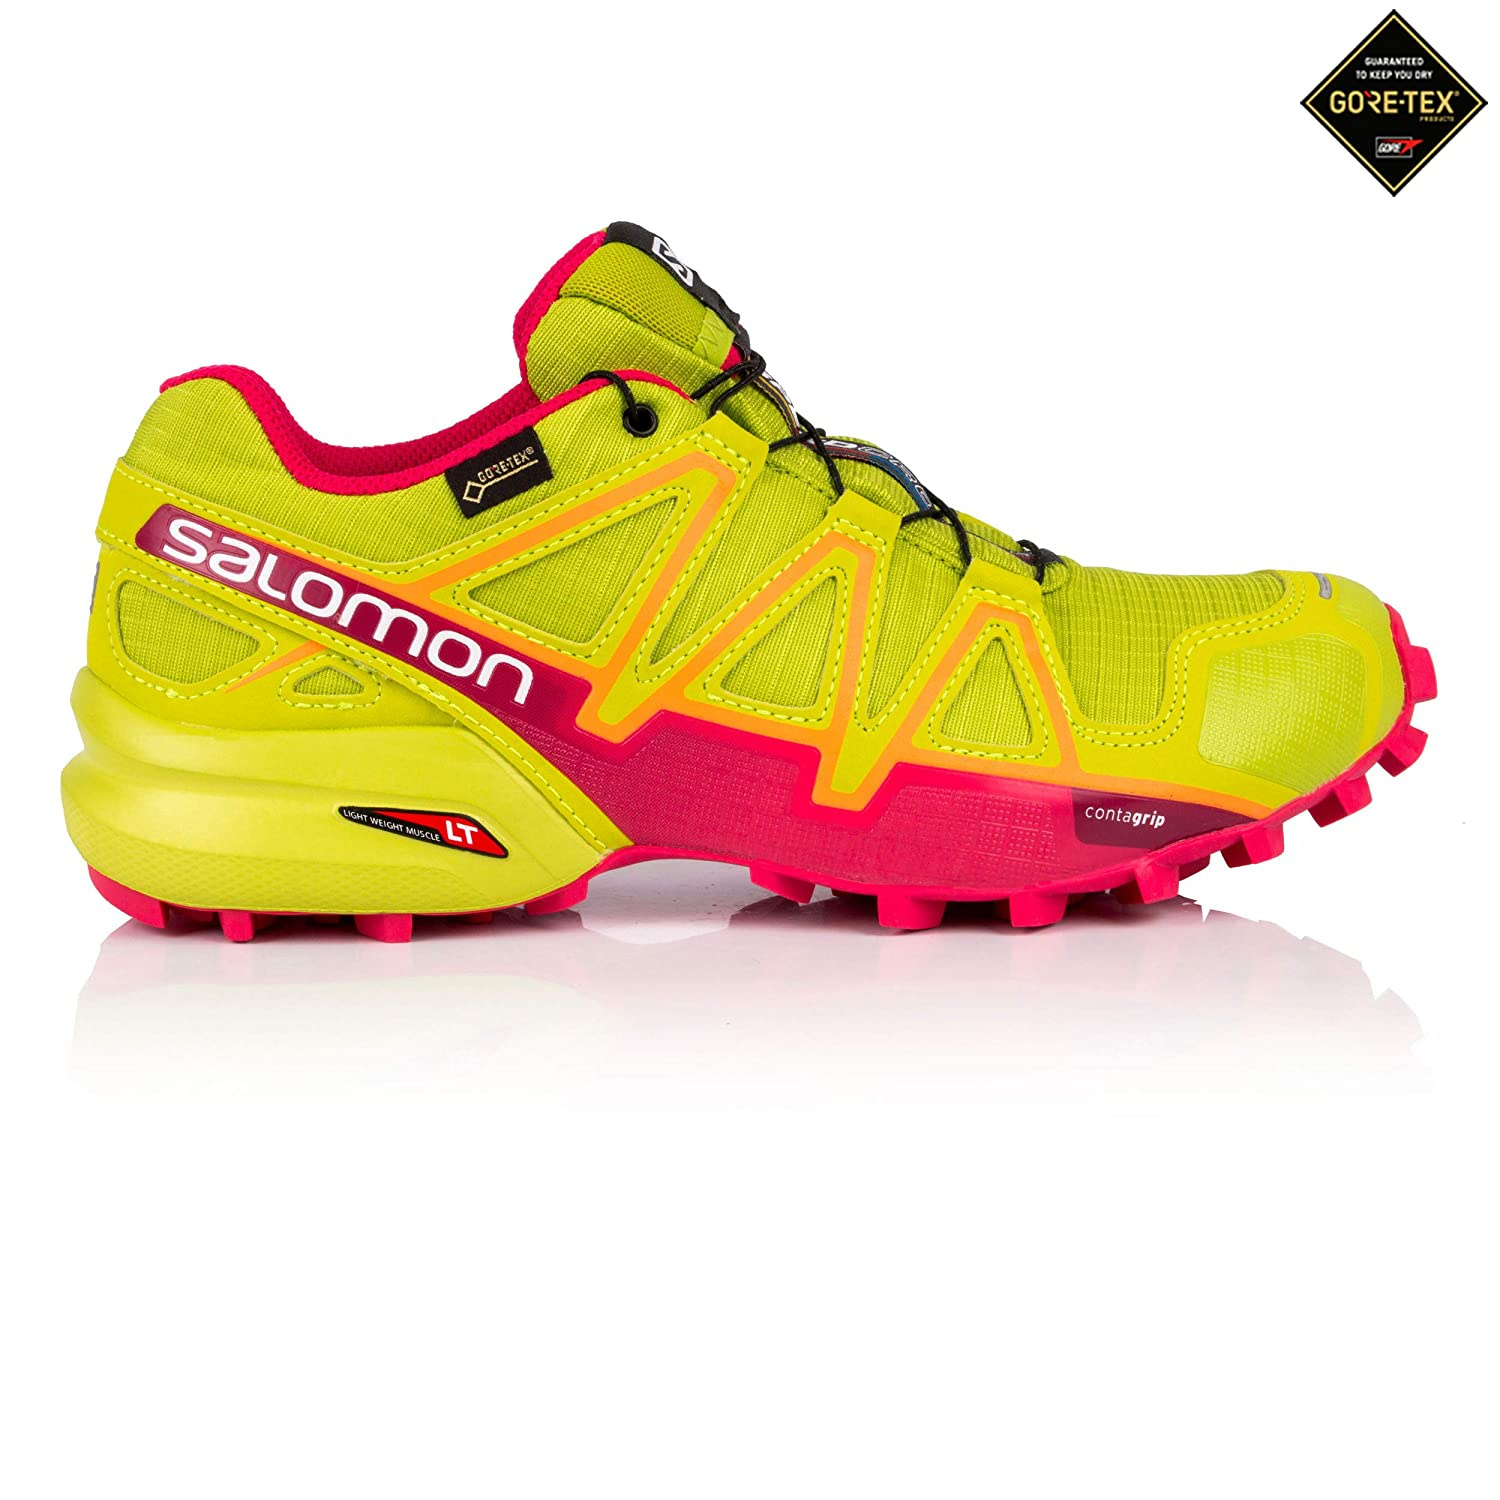 e6398684f531 Salomon Women Speedcross 4 Gtx W Trail Running Shoes